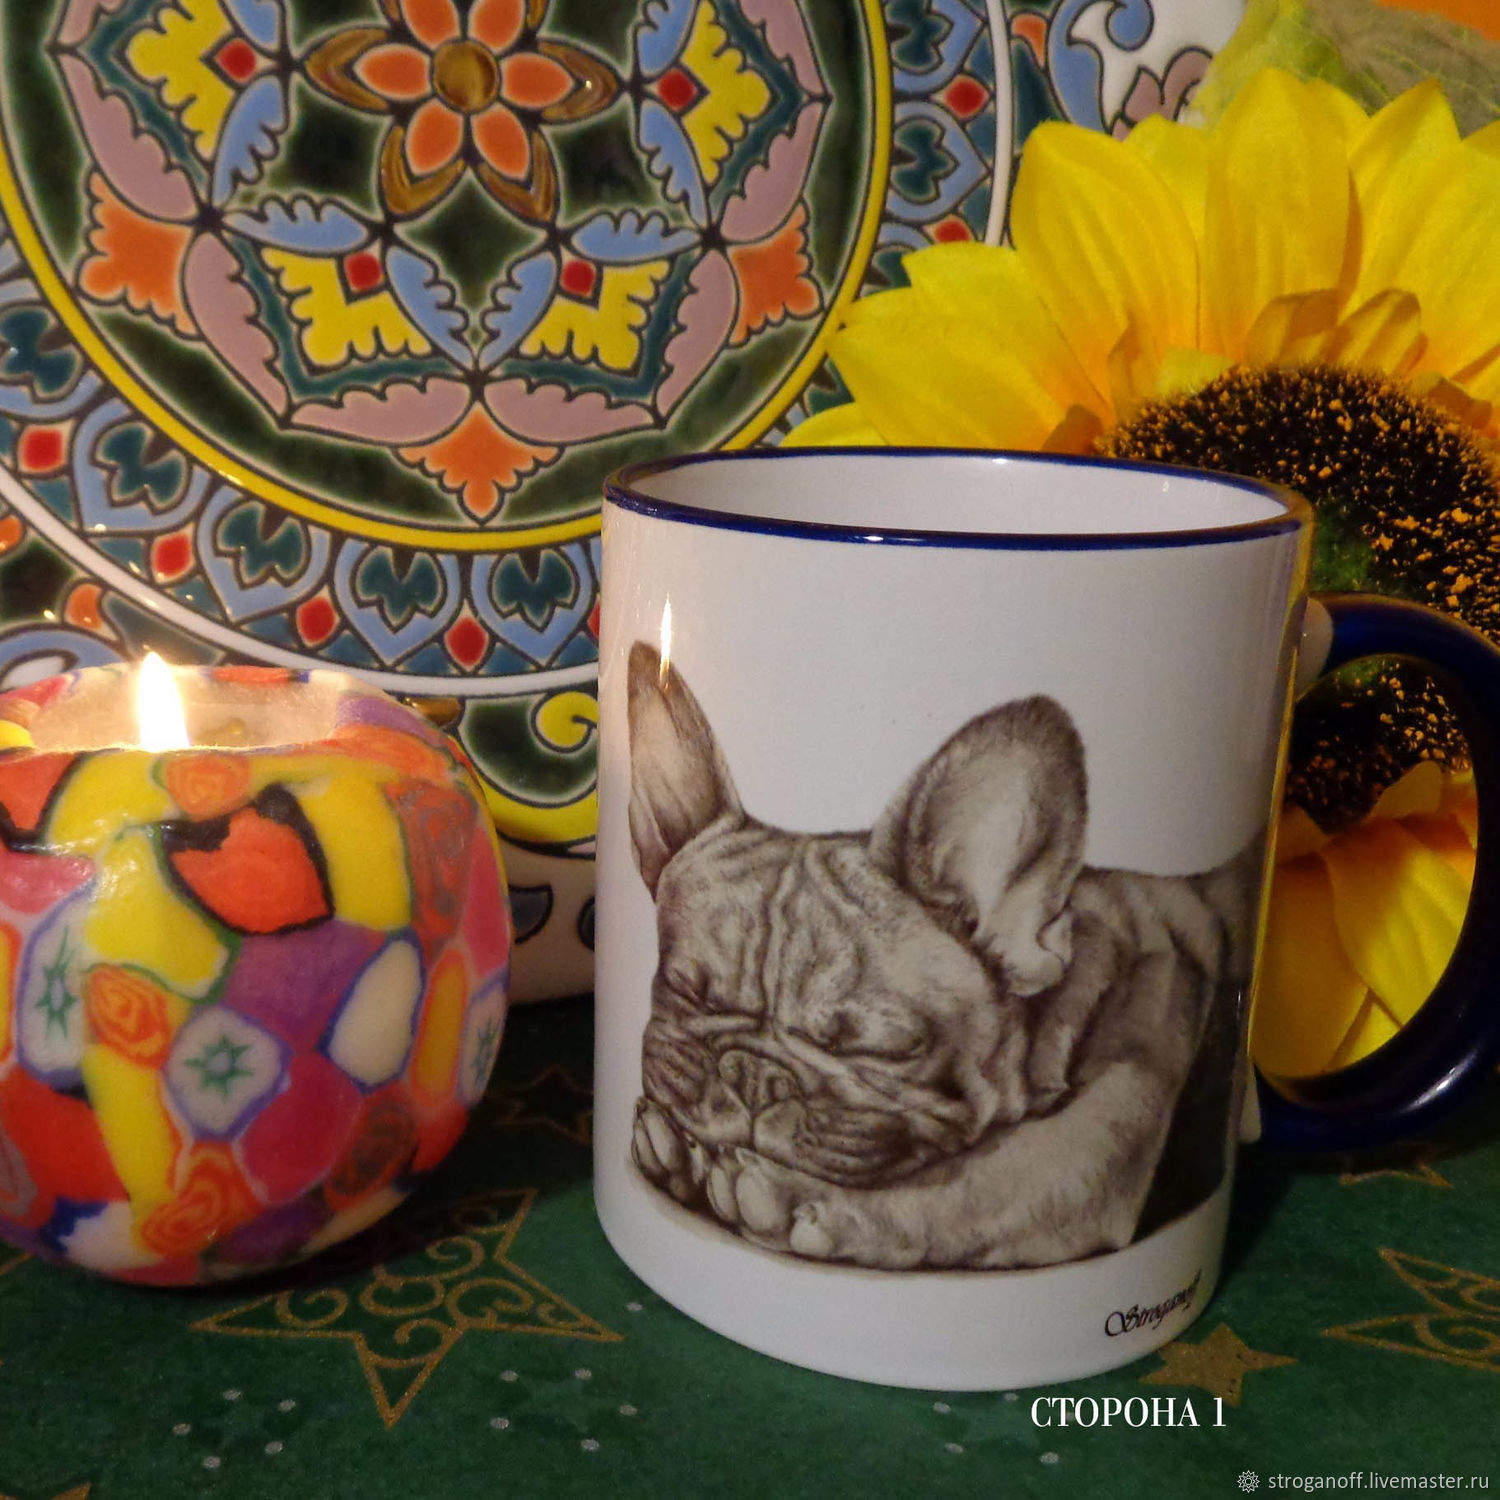 Author mug 'Bulldog', Mugs and cups, Moscow,  Фото №1